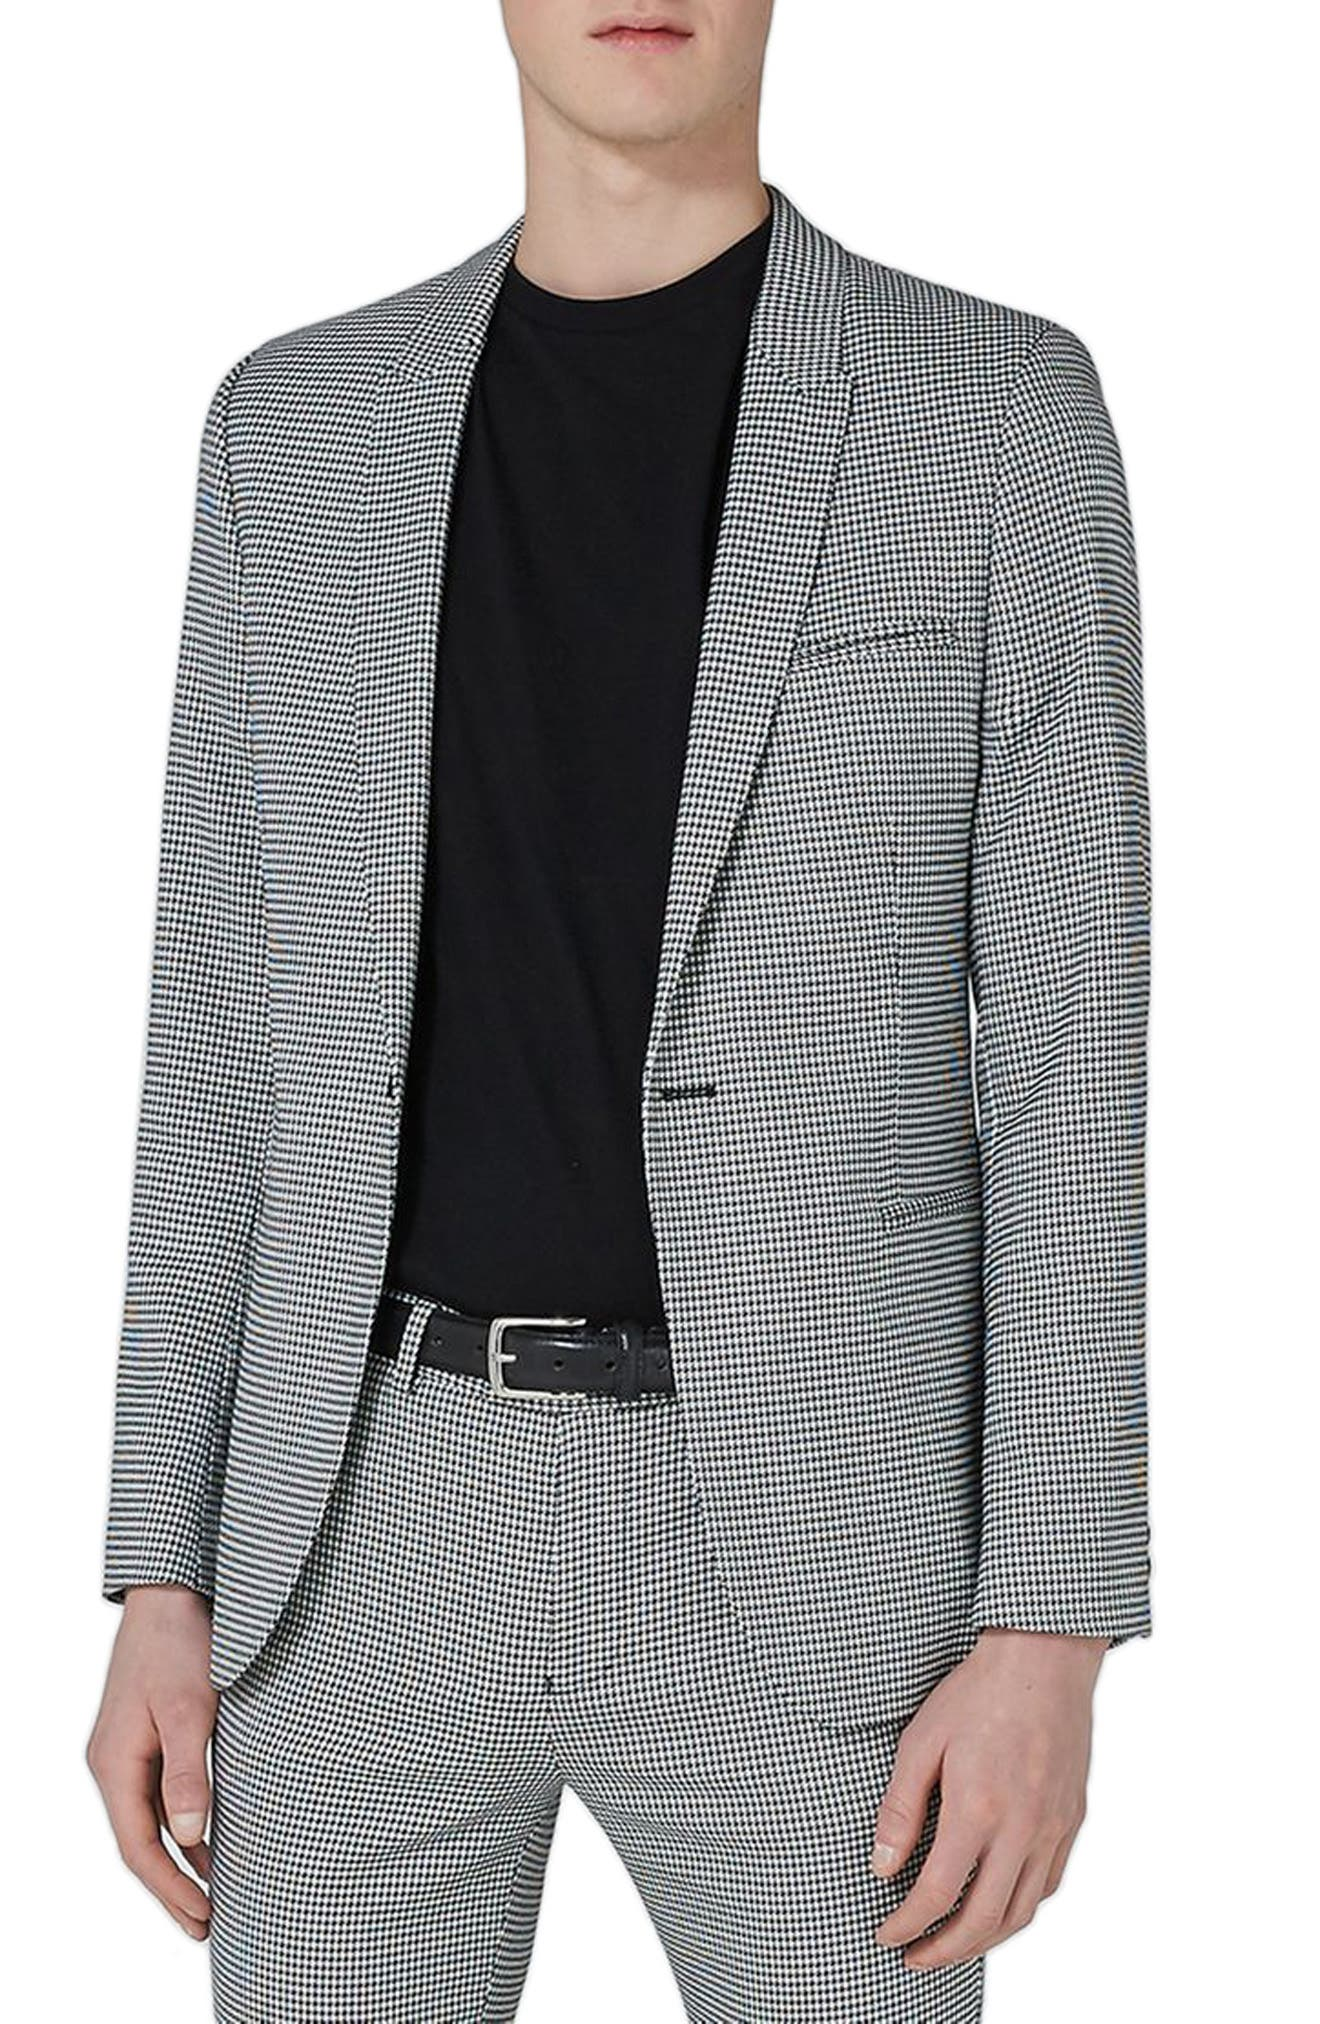 Ultra Skinny Fit Houndstooth Suit Jacket,                         Main,                         color, 020